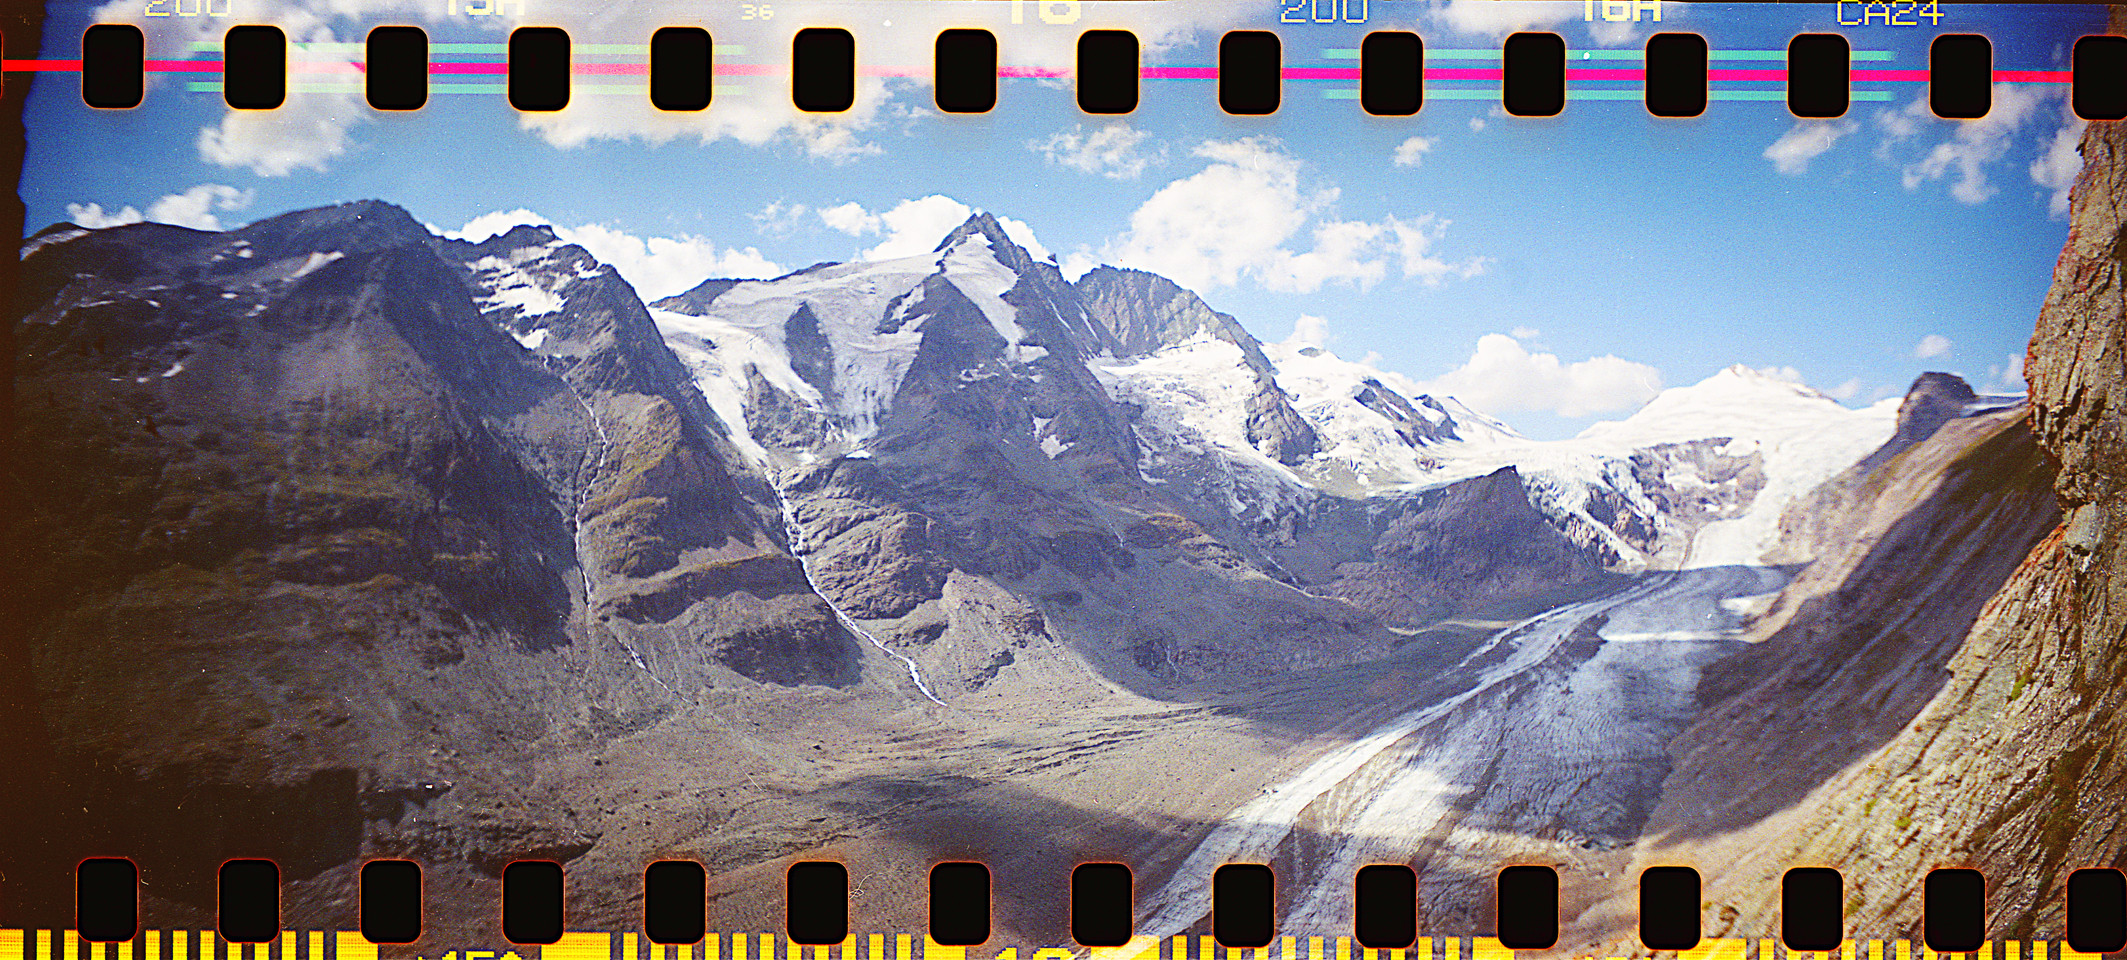 Sprocket Rocket am Grossglockner